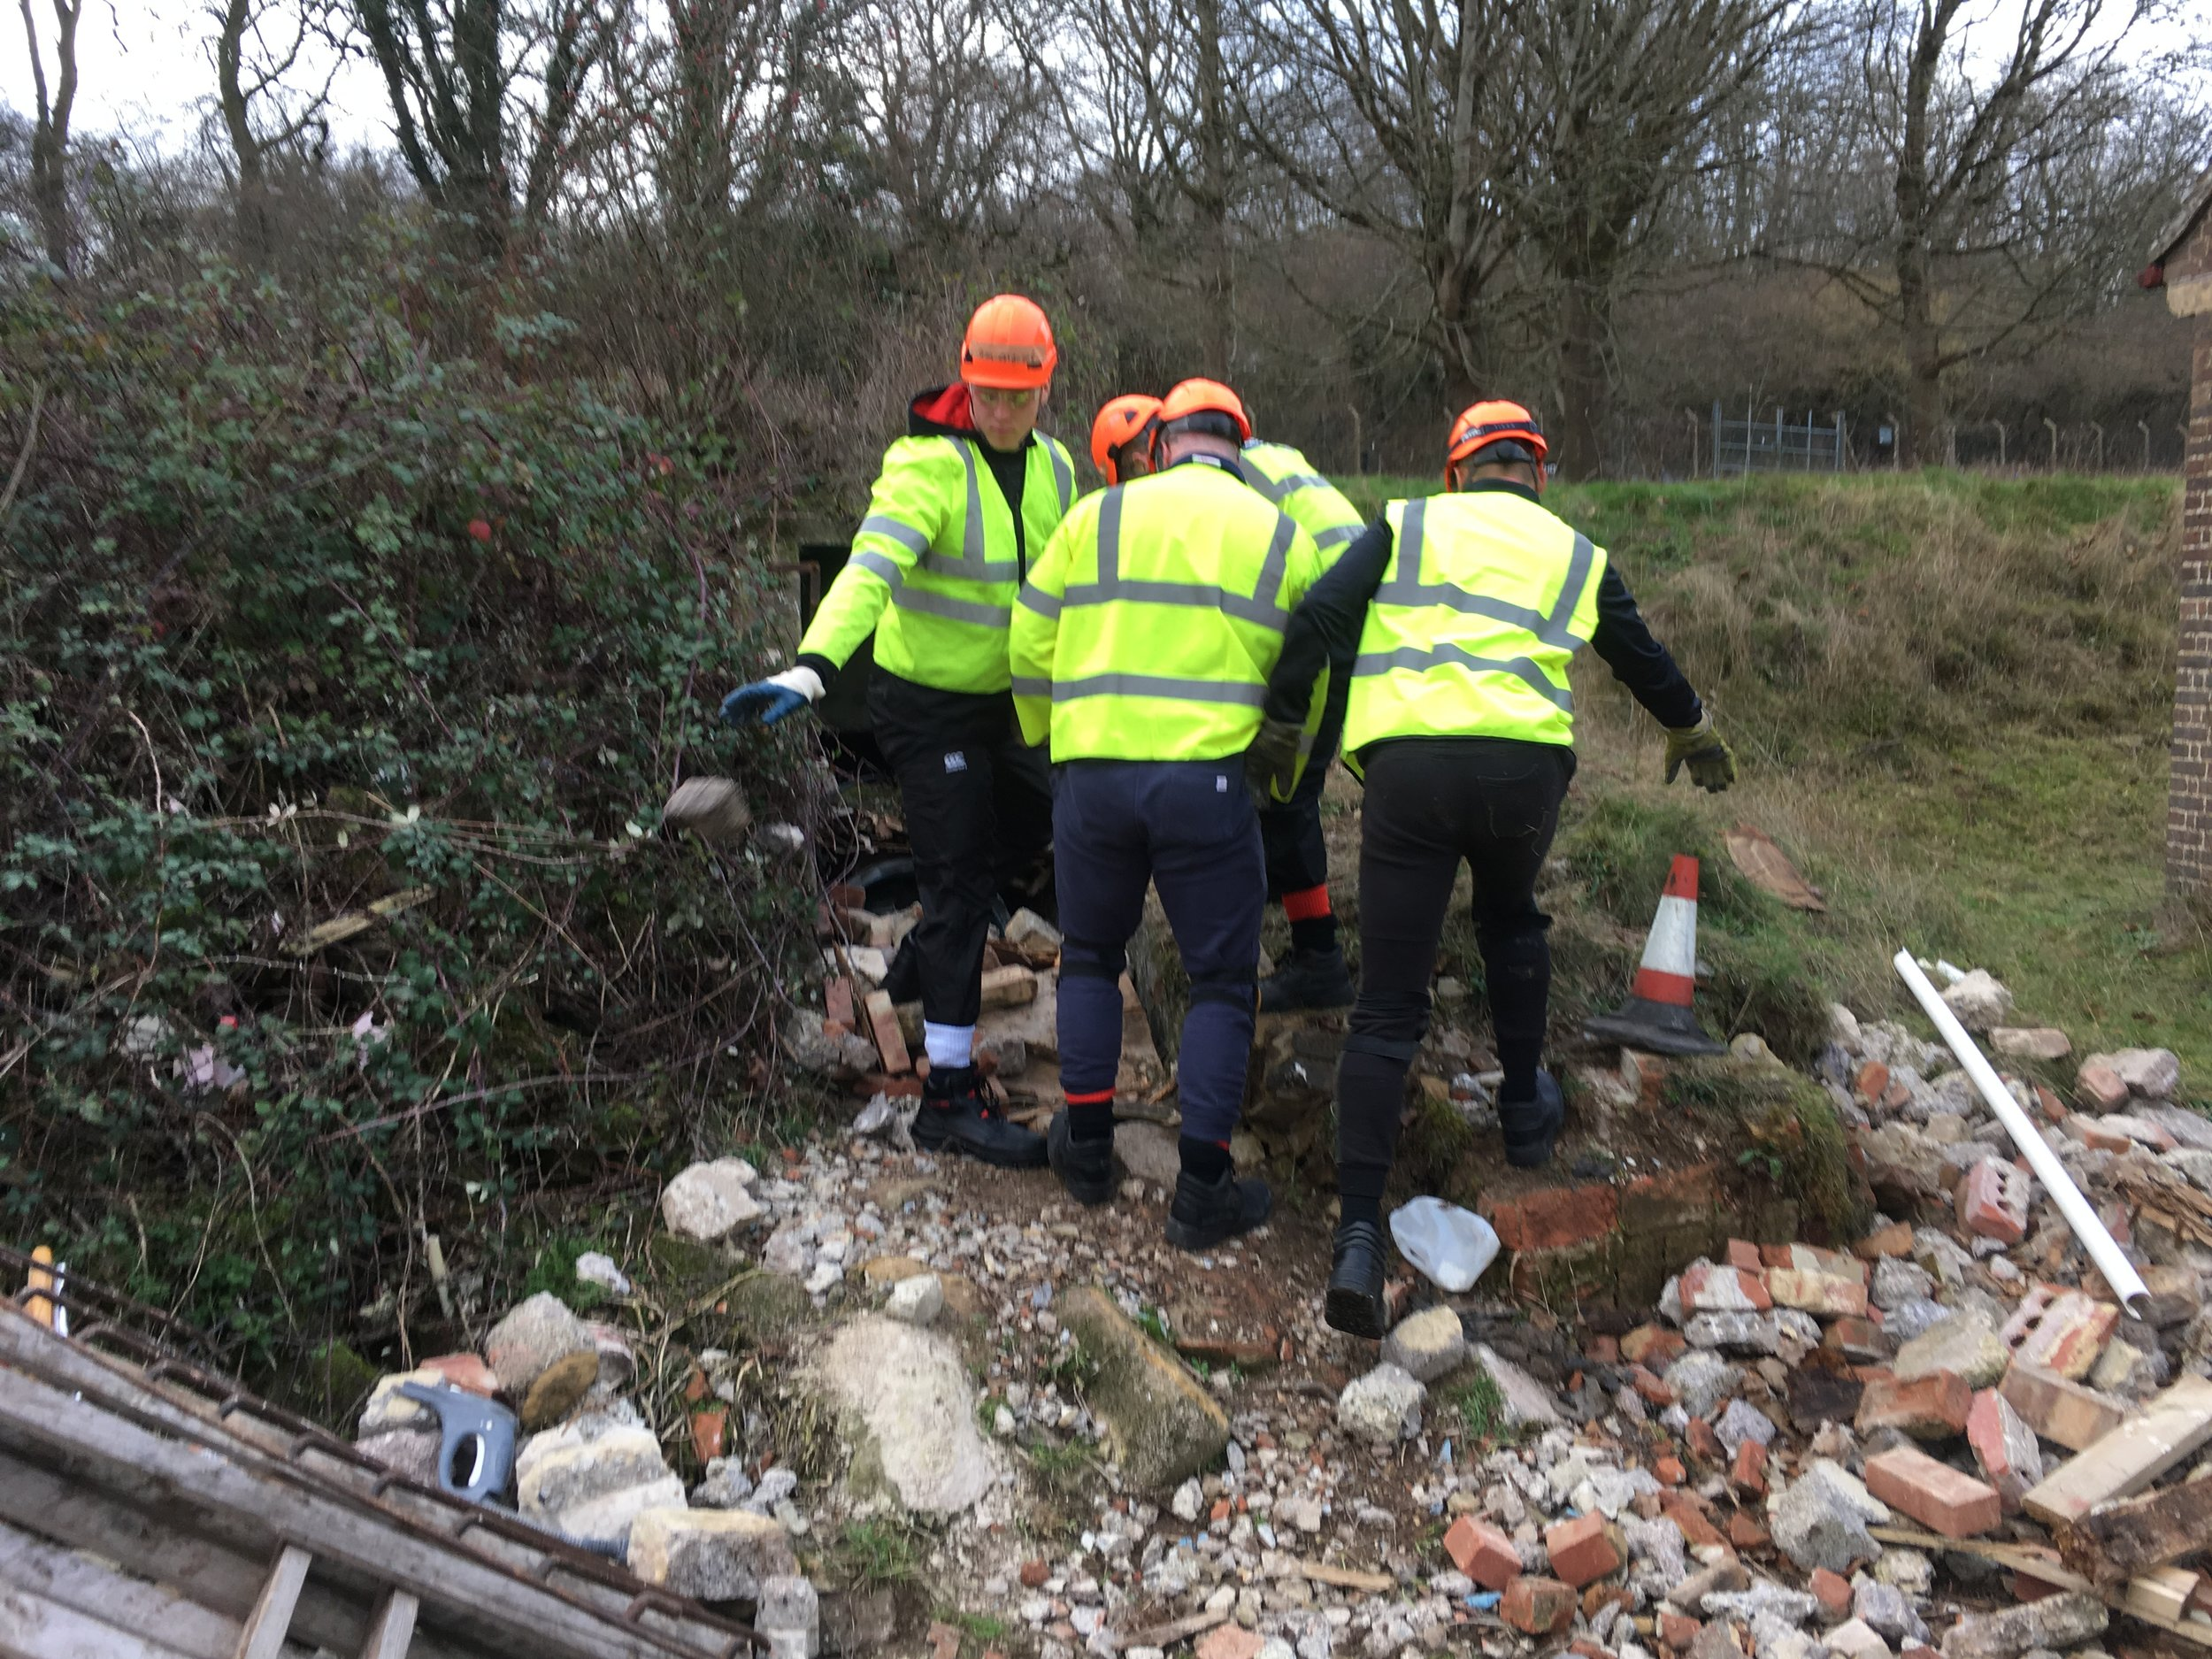 England Rugby U20 players had to carry out tunnel rescue in a disaster scenario laid on by volunteers from the Serve On humanitarian charity.